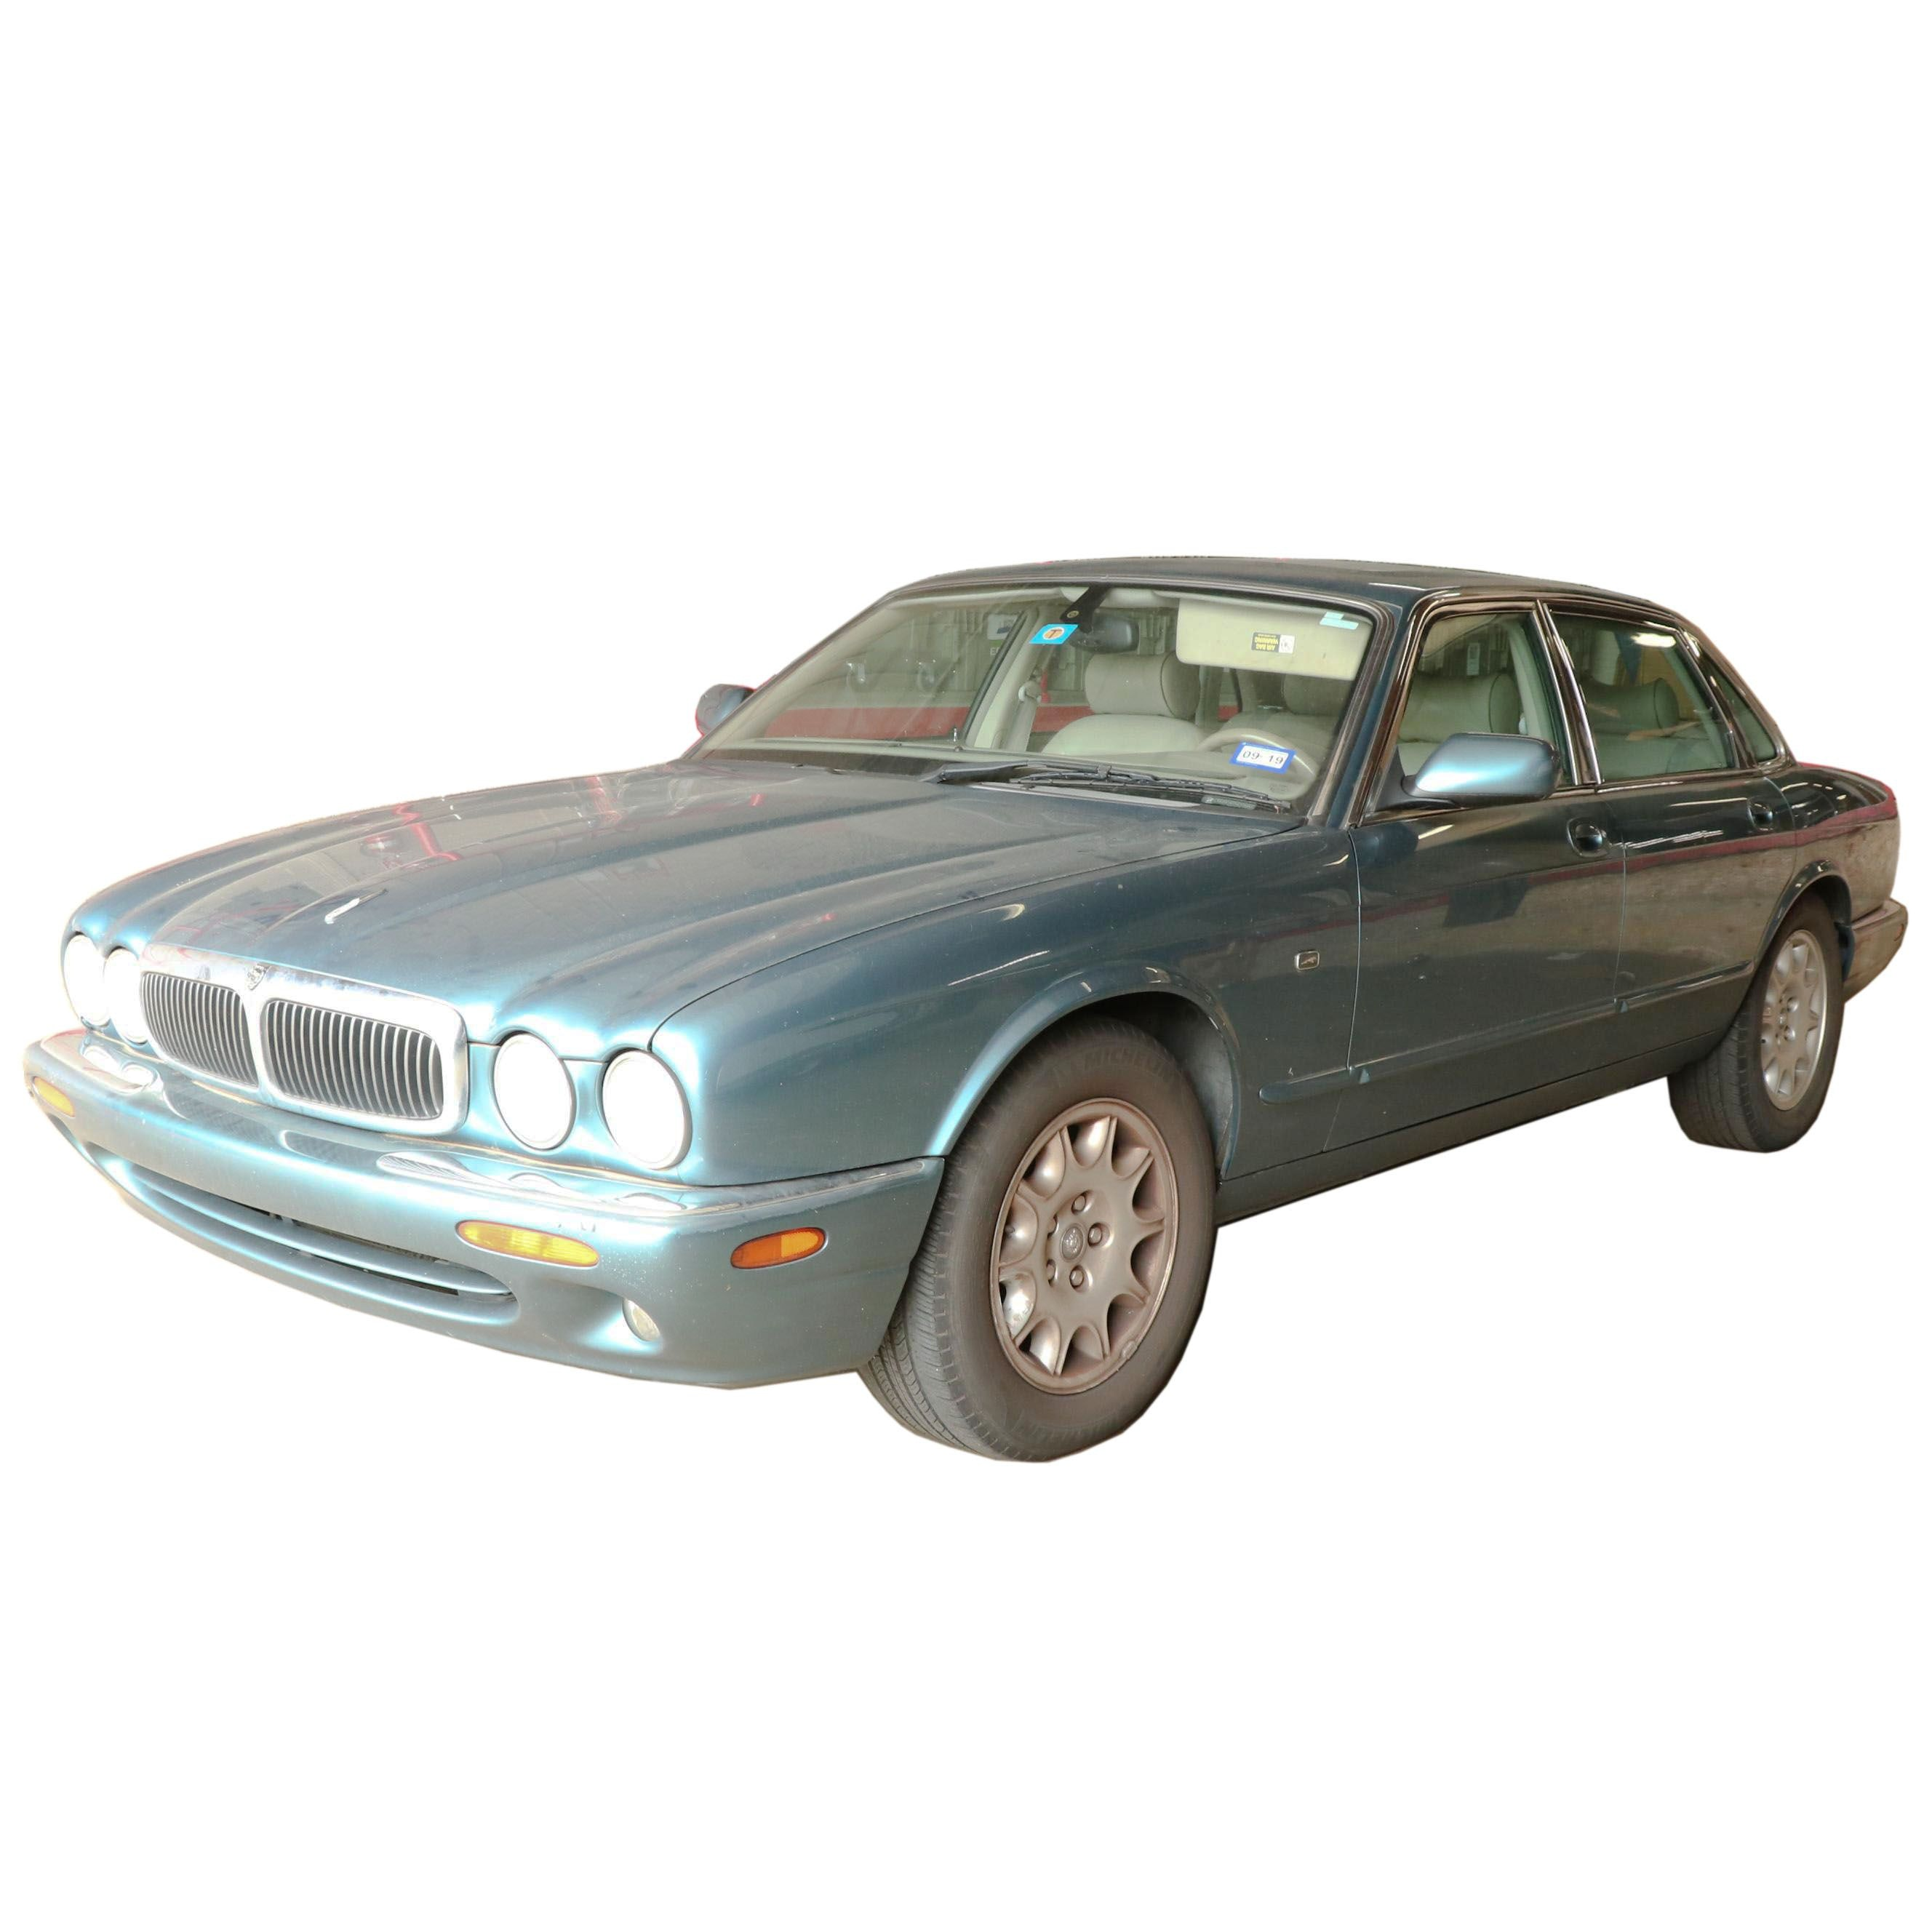 2000 Jaguar XJ8 Four-Door Sedan